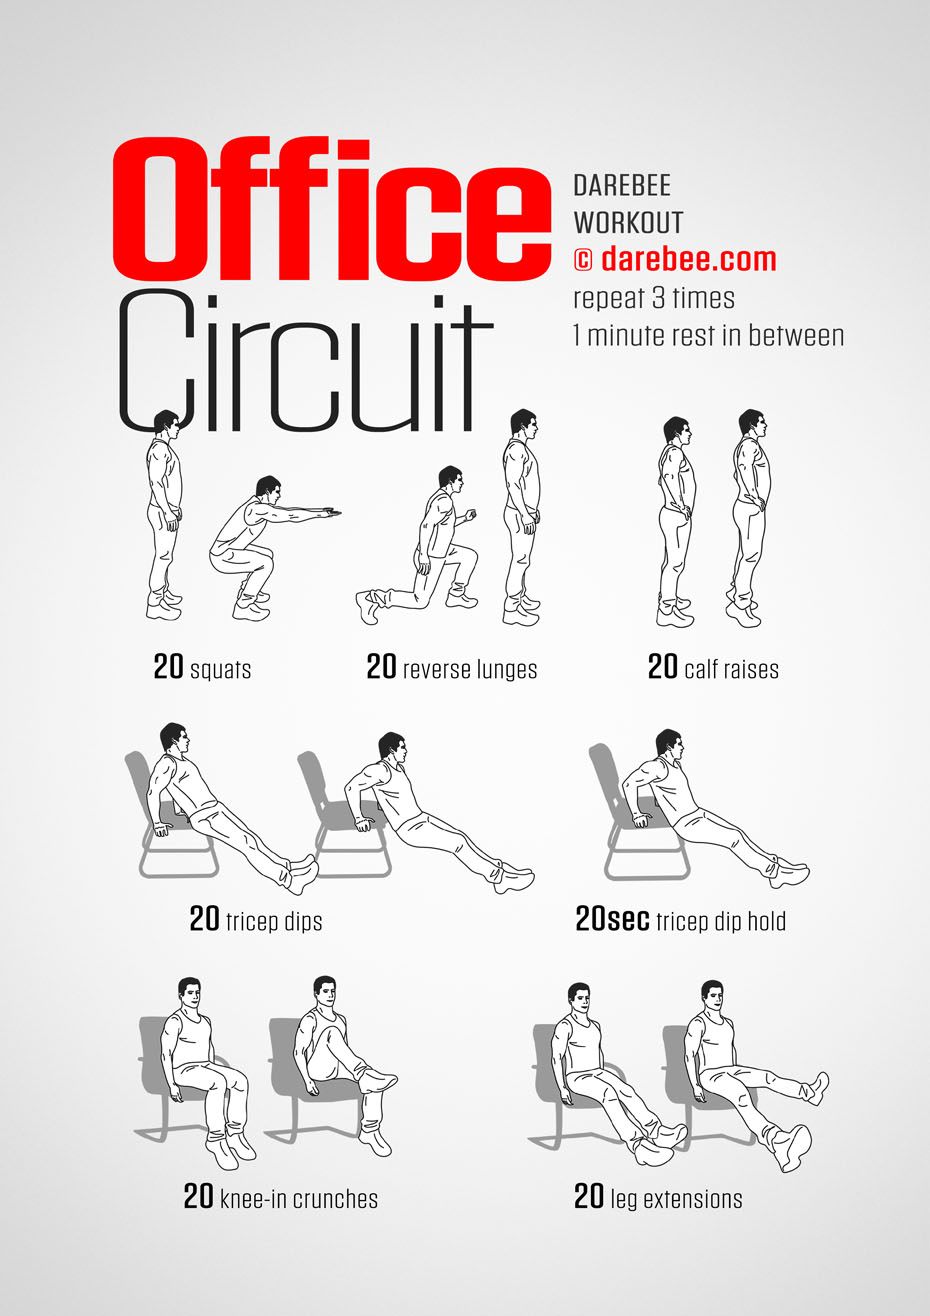 office circuit